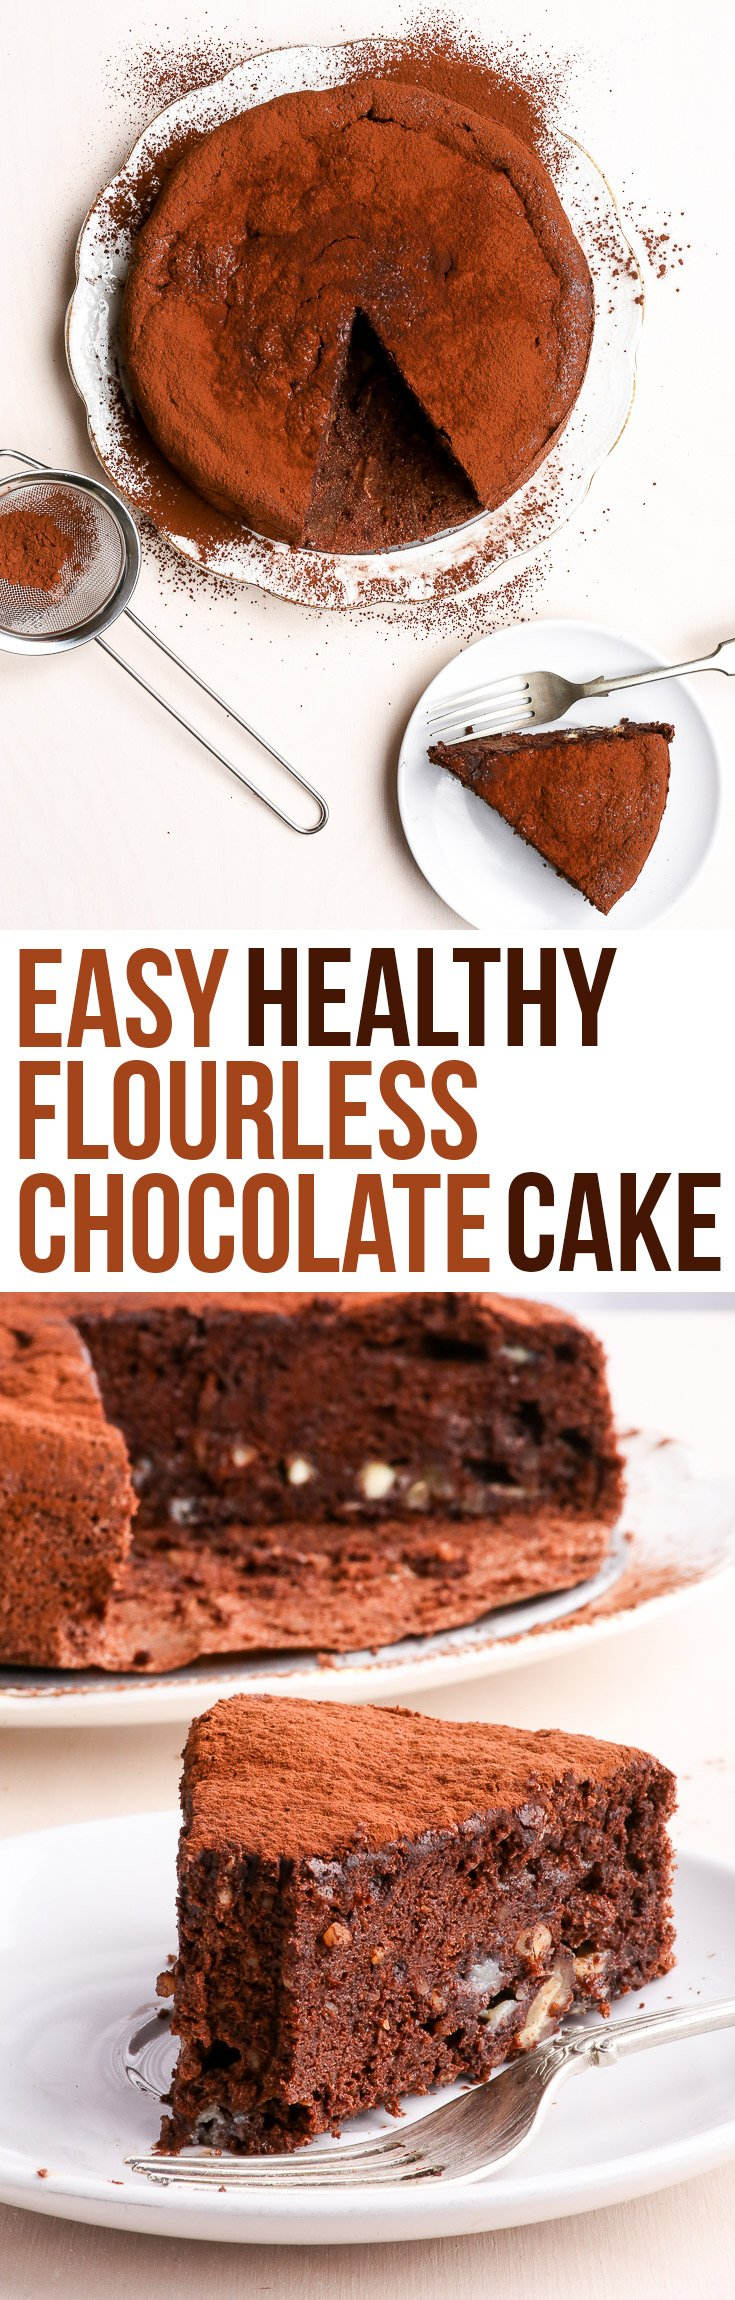 Easy & Healthy Flourless Chocolate Cake with Pecans {gluten, dairy, peanut, soy & refined sugar free, paleo} - This healthy flourless chocolate cake will blow minds and make (many) new friends. The prefect dessert to make with leftover egg whites, it's gluten and dairy free, as well as paleo. Super chocolatey and ridiculously delicious, it's bound to impress!